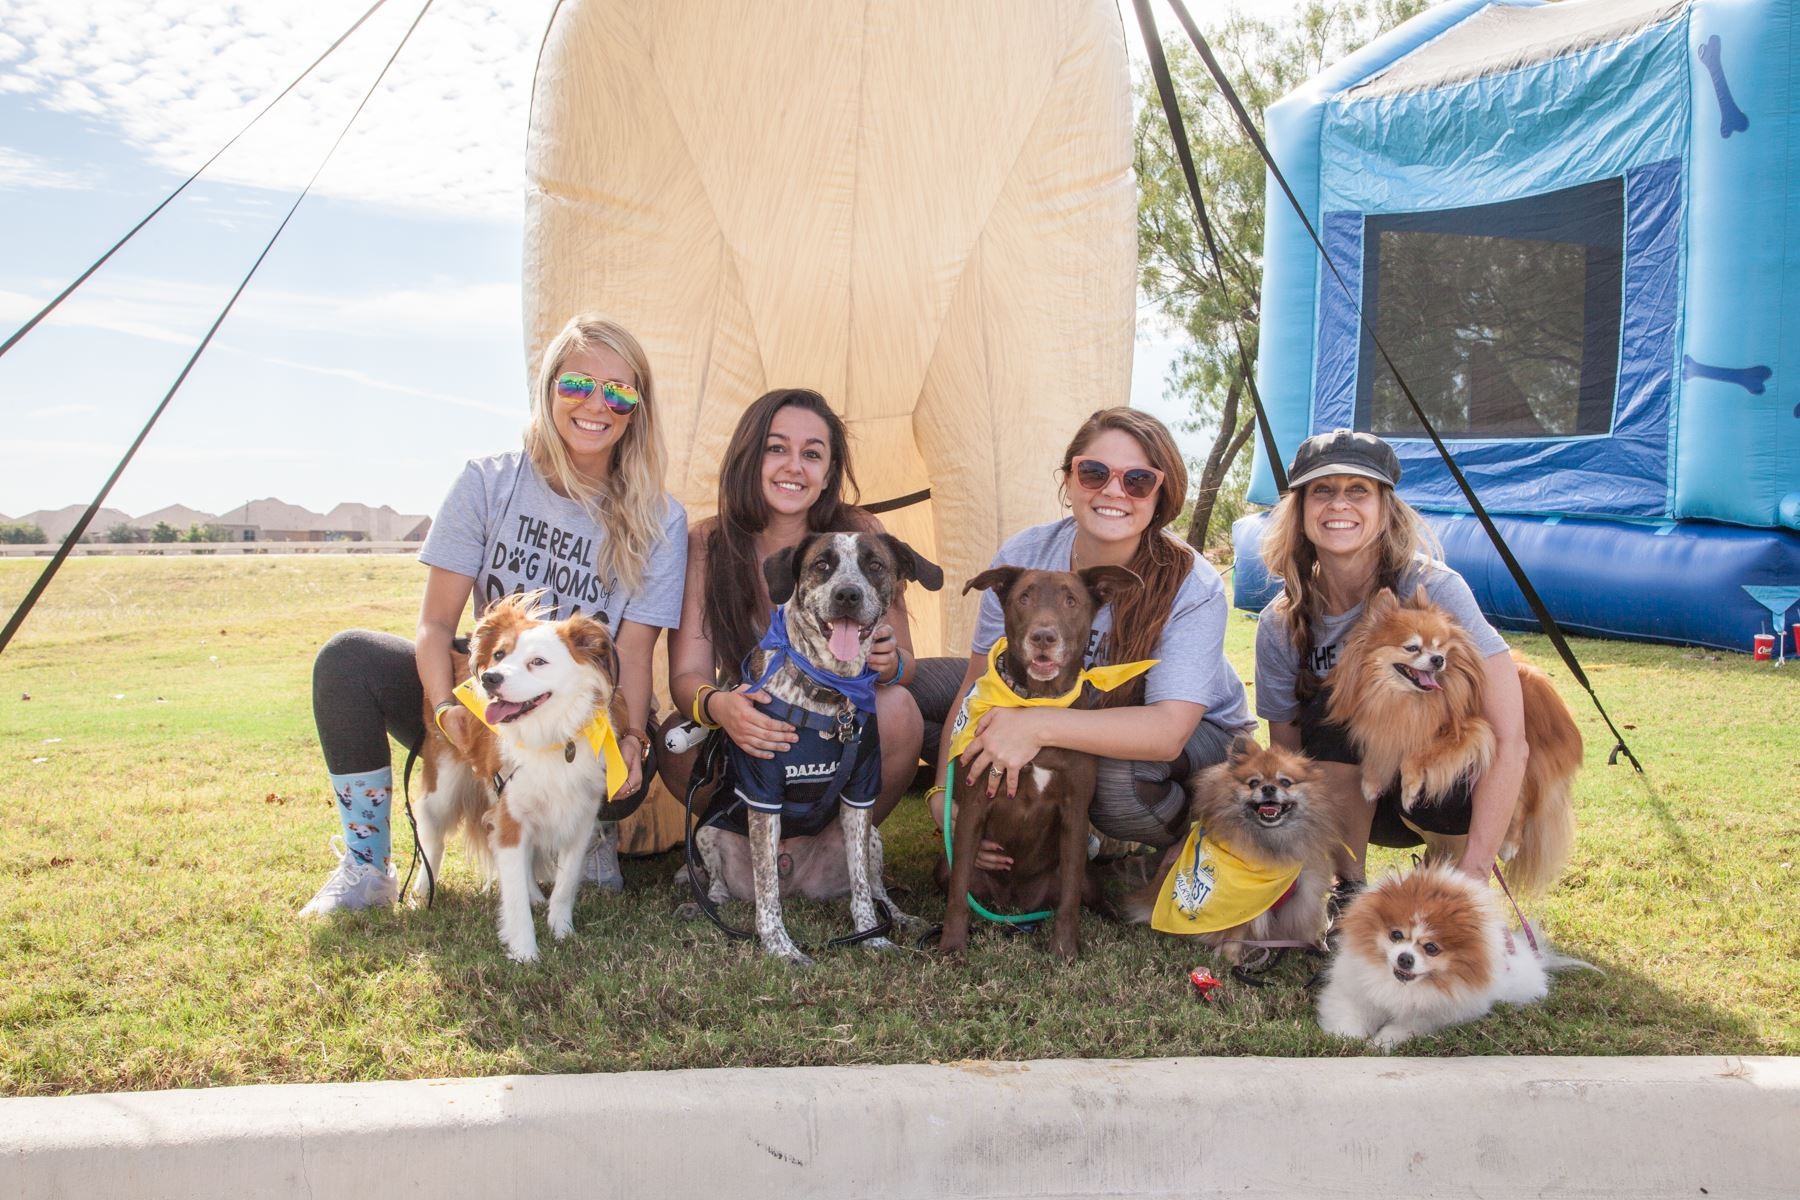 service dogs, DogFest Walk 'n' Roll, courtesy Canine Companions for Independence